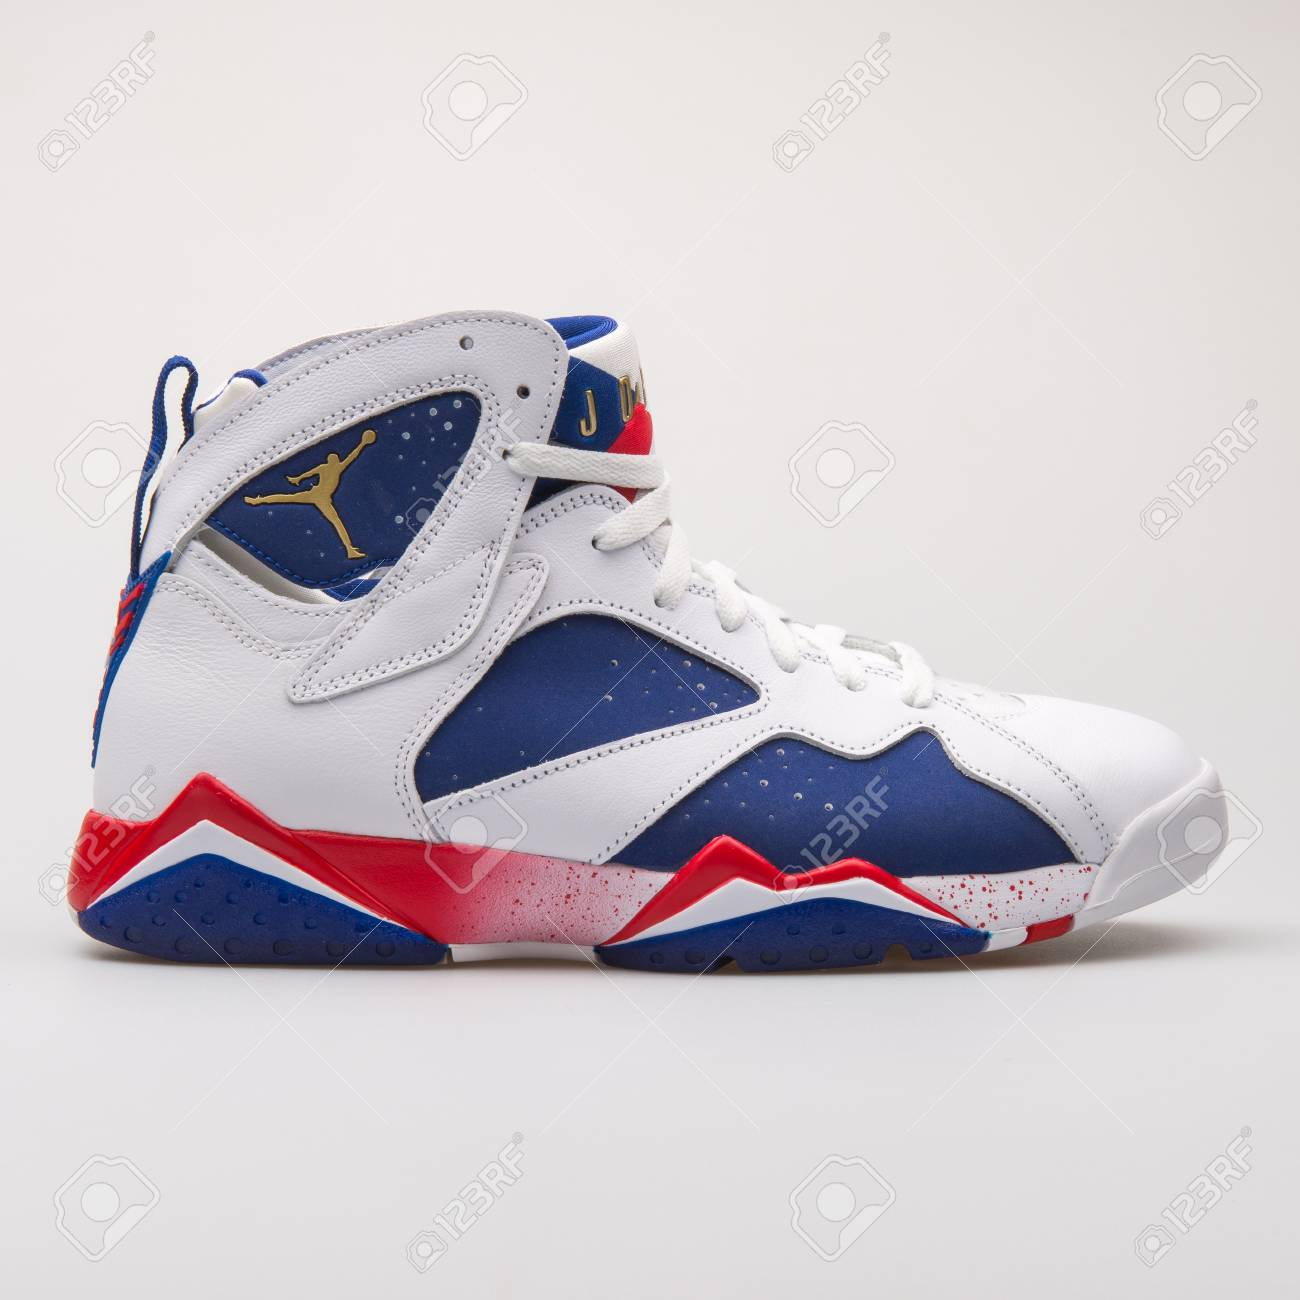 meet 11beb 174f7 VIENNA, AUSTRIA - JUNE 14, 2017: Nike Air Jordan 7 Retro white,..